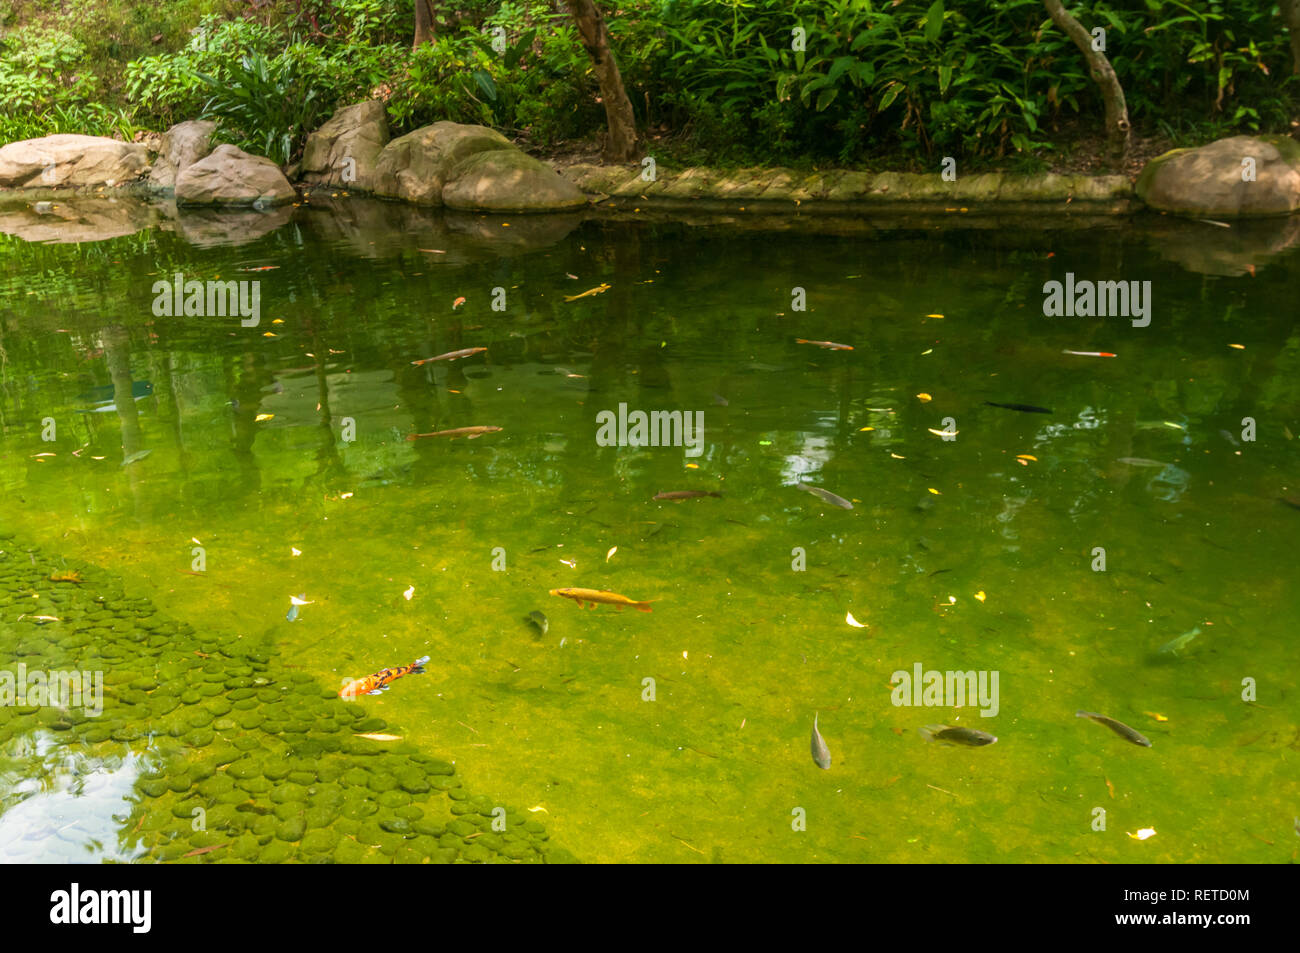 Colour abounds as beautiful fish swim in pond in Hong Kong park, affording travellers to China a place to enjoy in a peaceful, lovely setting. - Stock Image